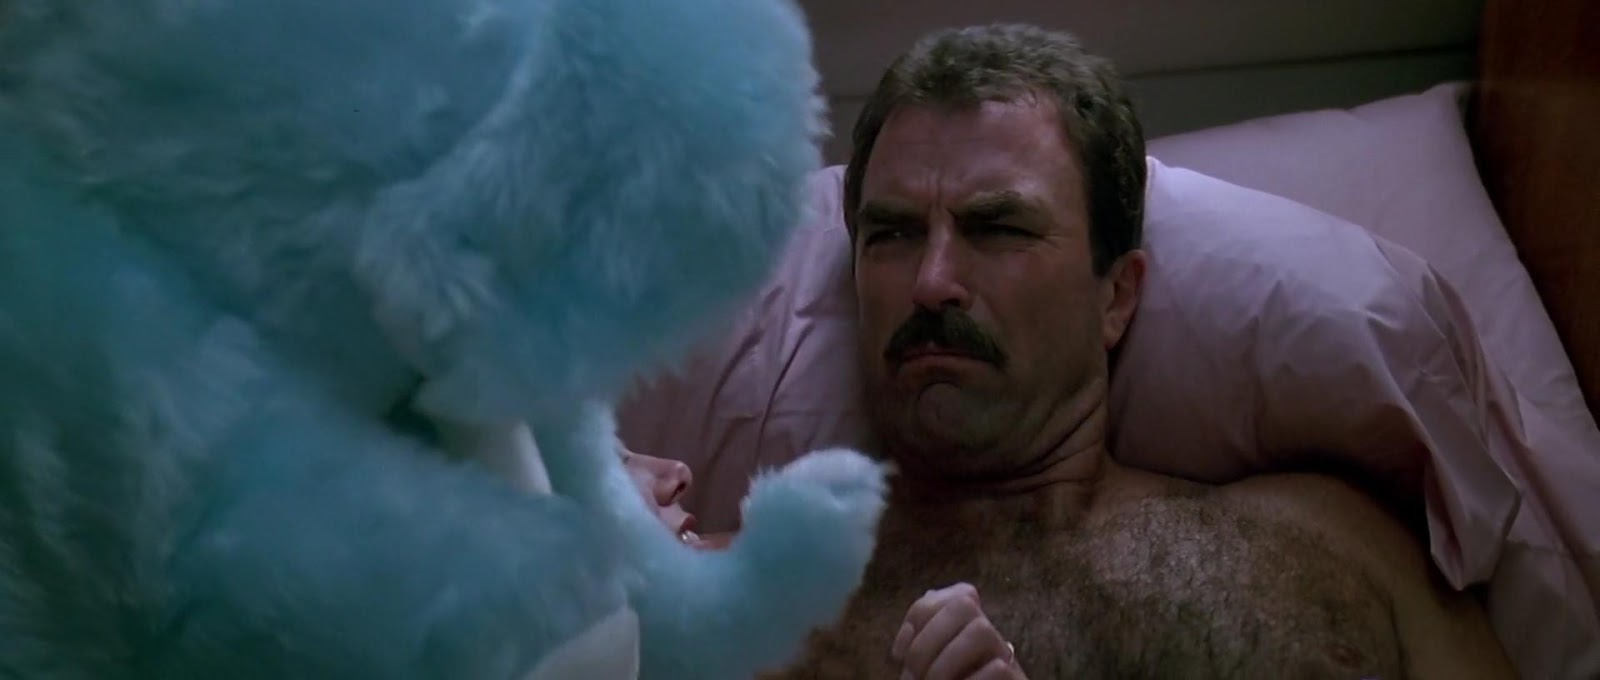 You will Tom selleck images nude